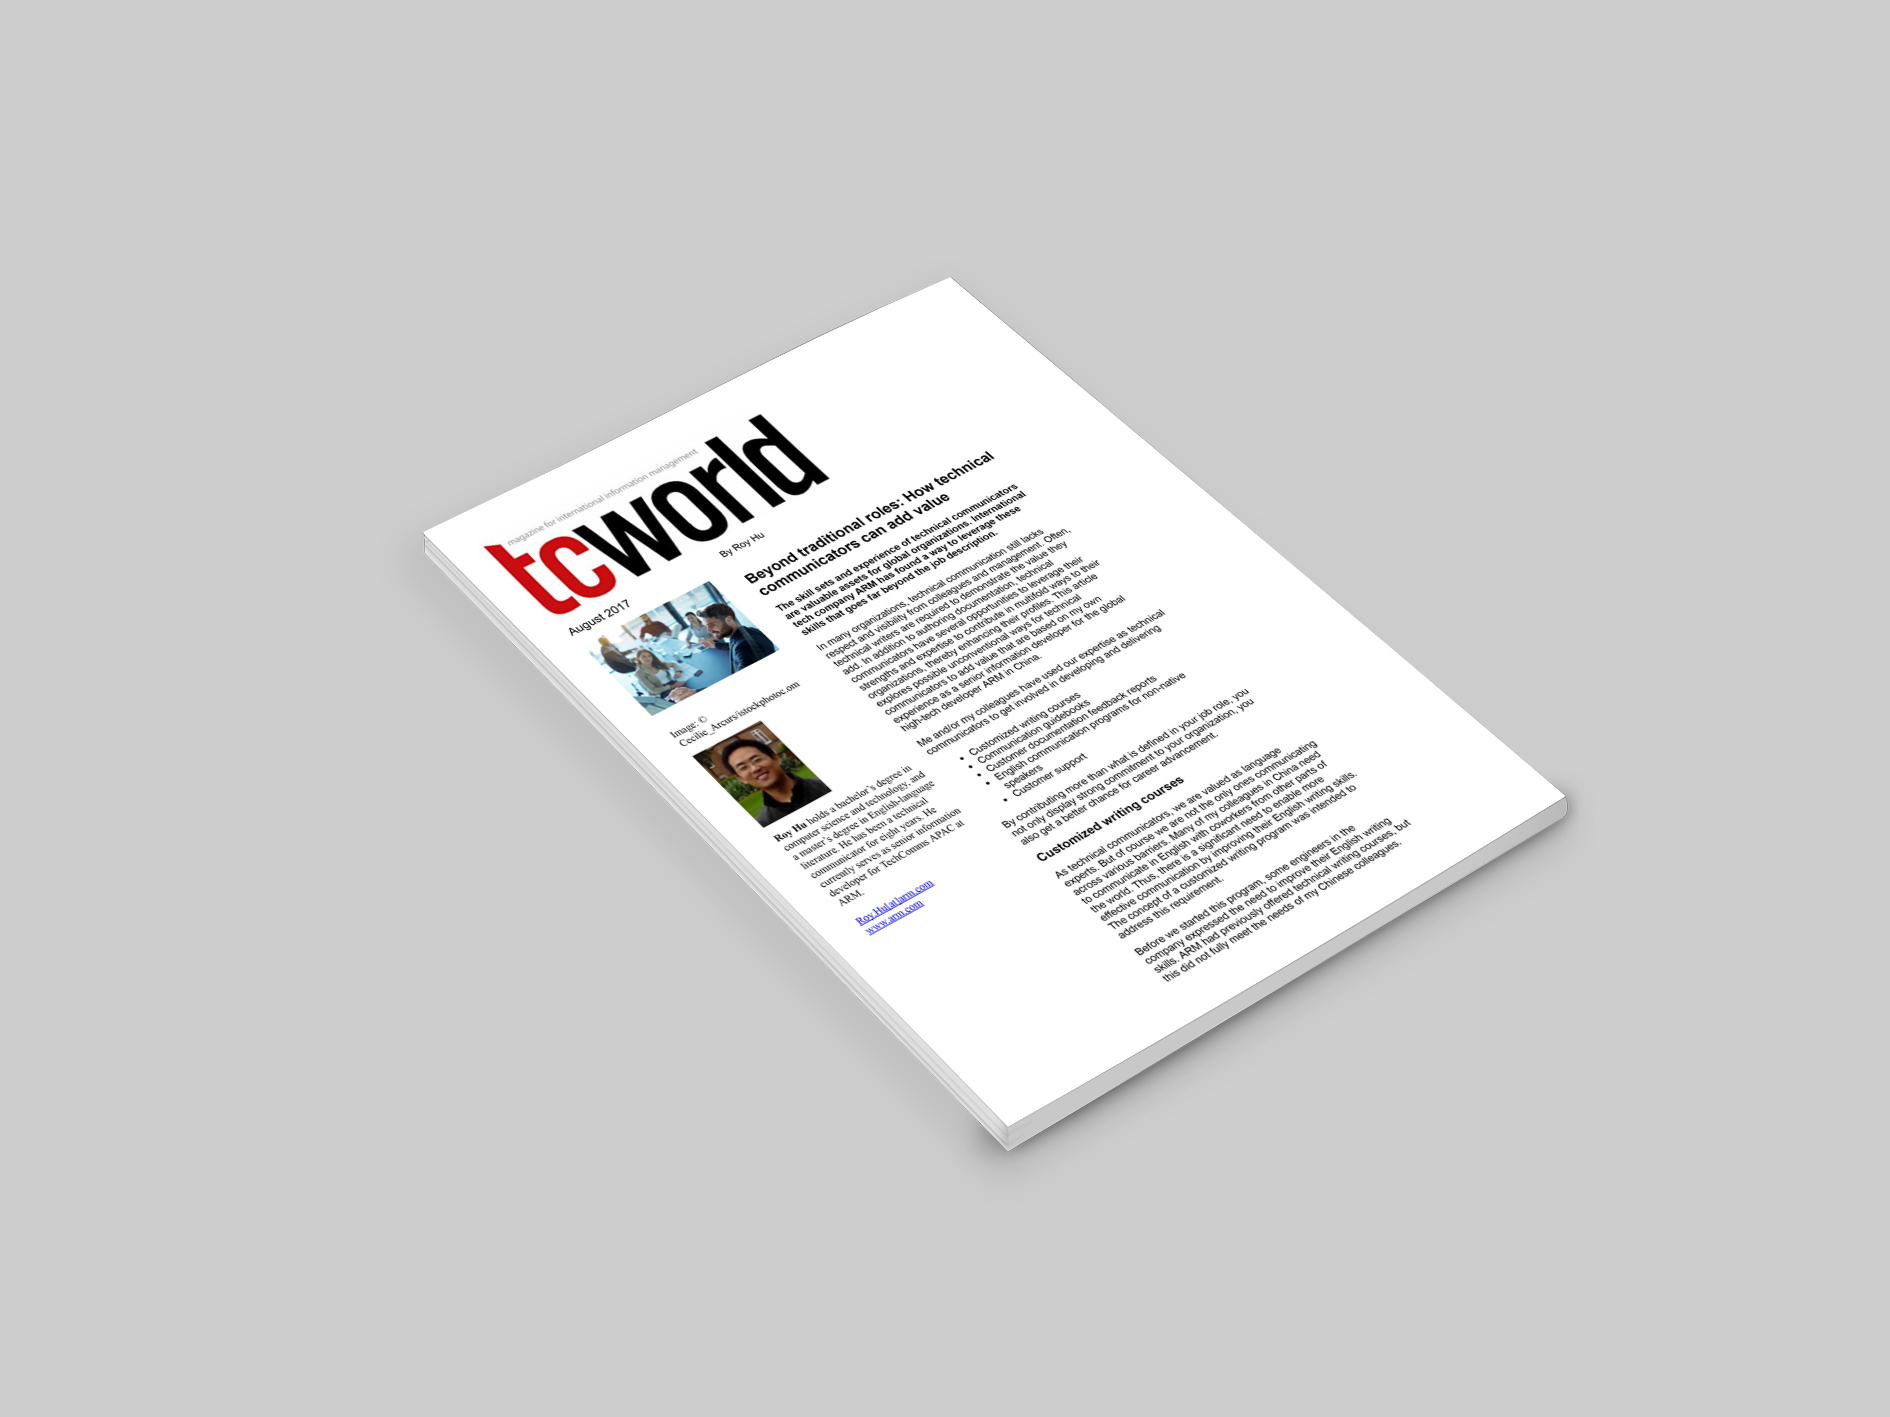 title page of TC world article